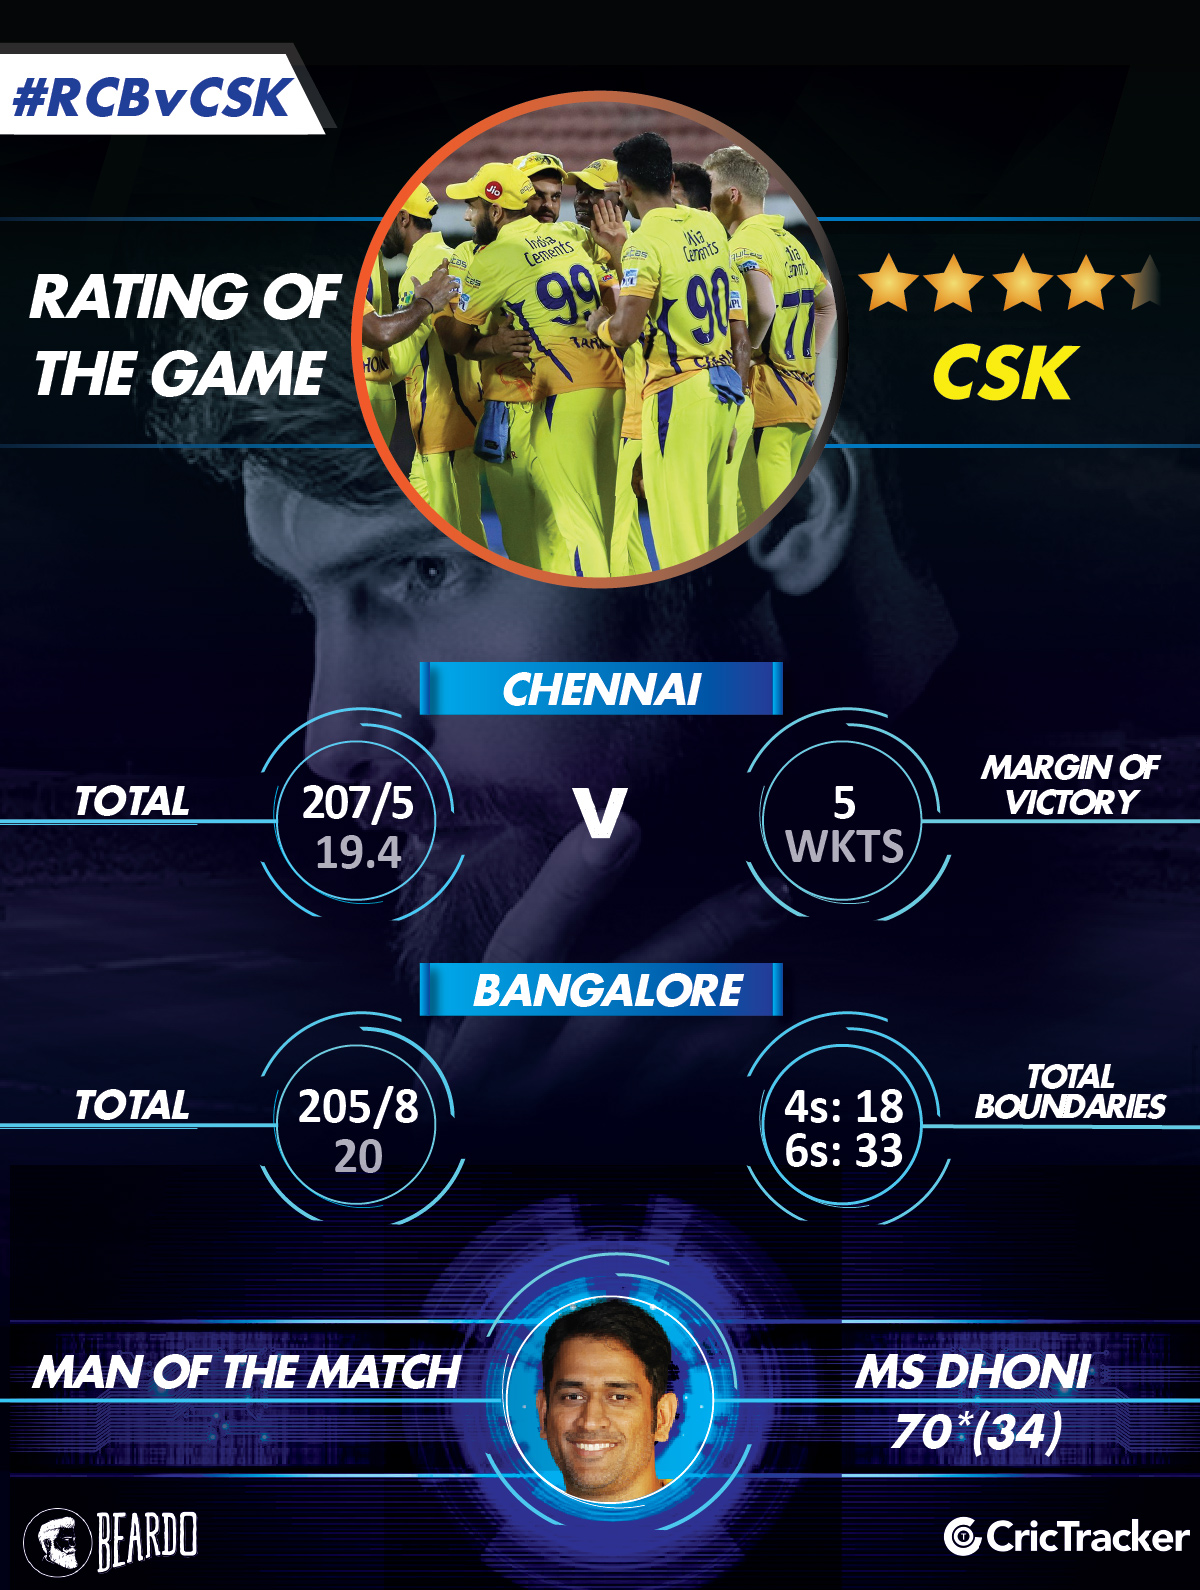 IPL2018-RCB-vs-CSK-RatinG-of-the-matcH